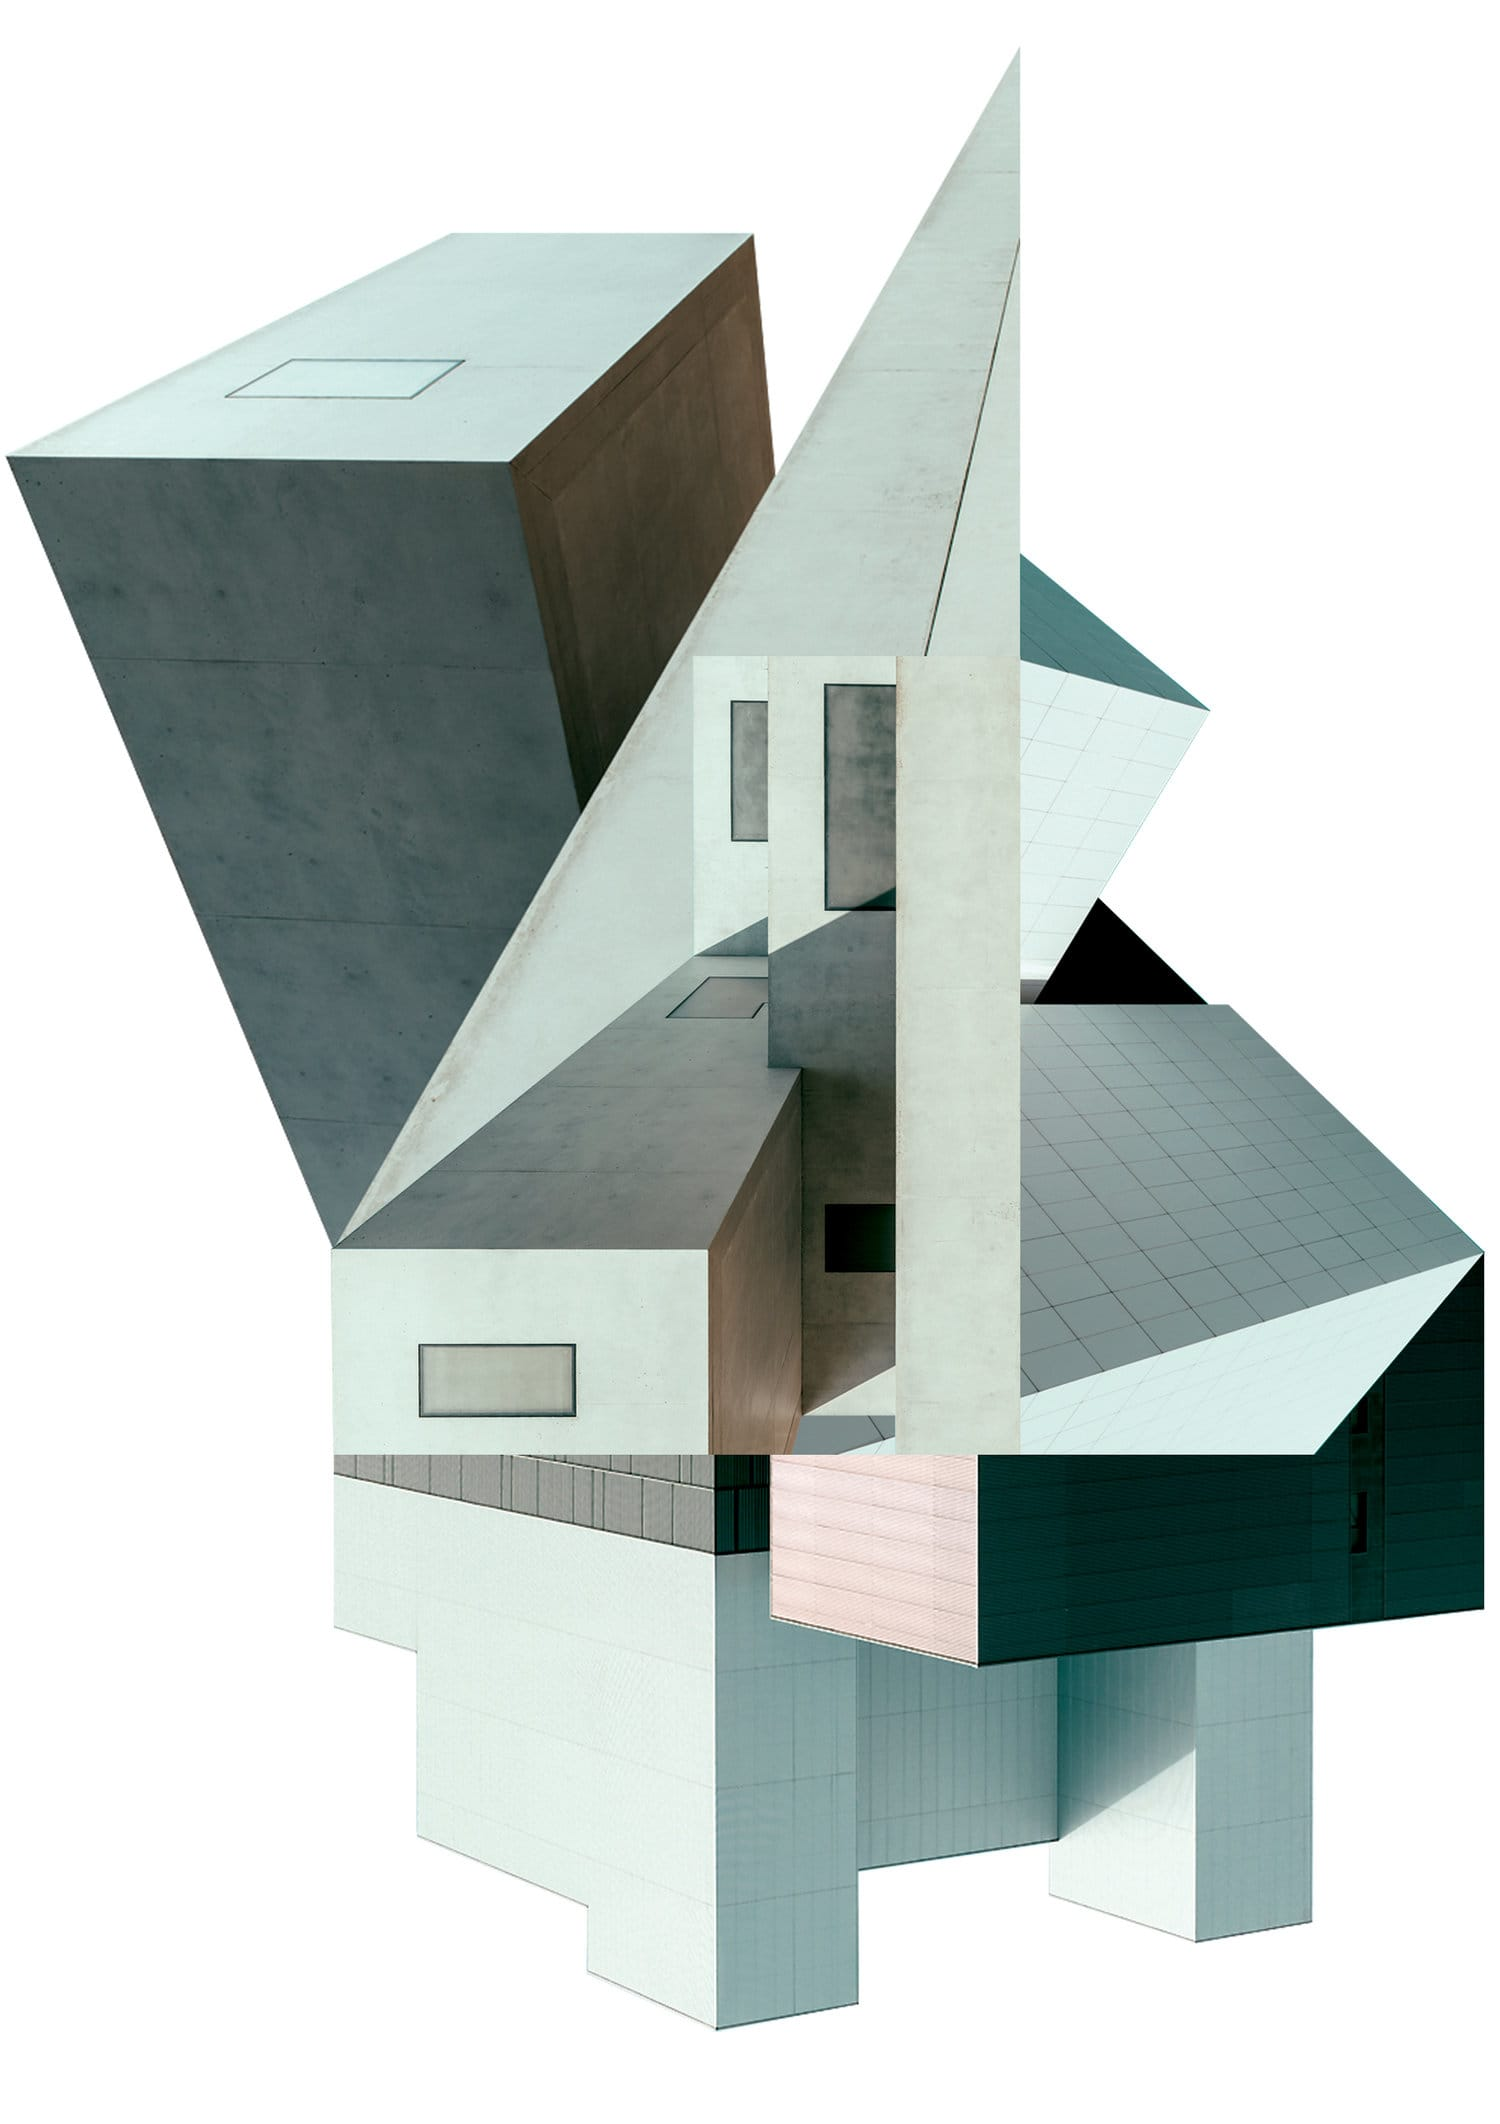 Brutalist Architectural Collages